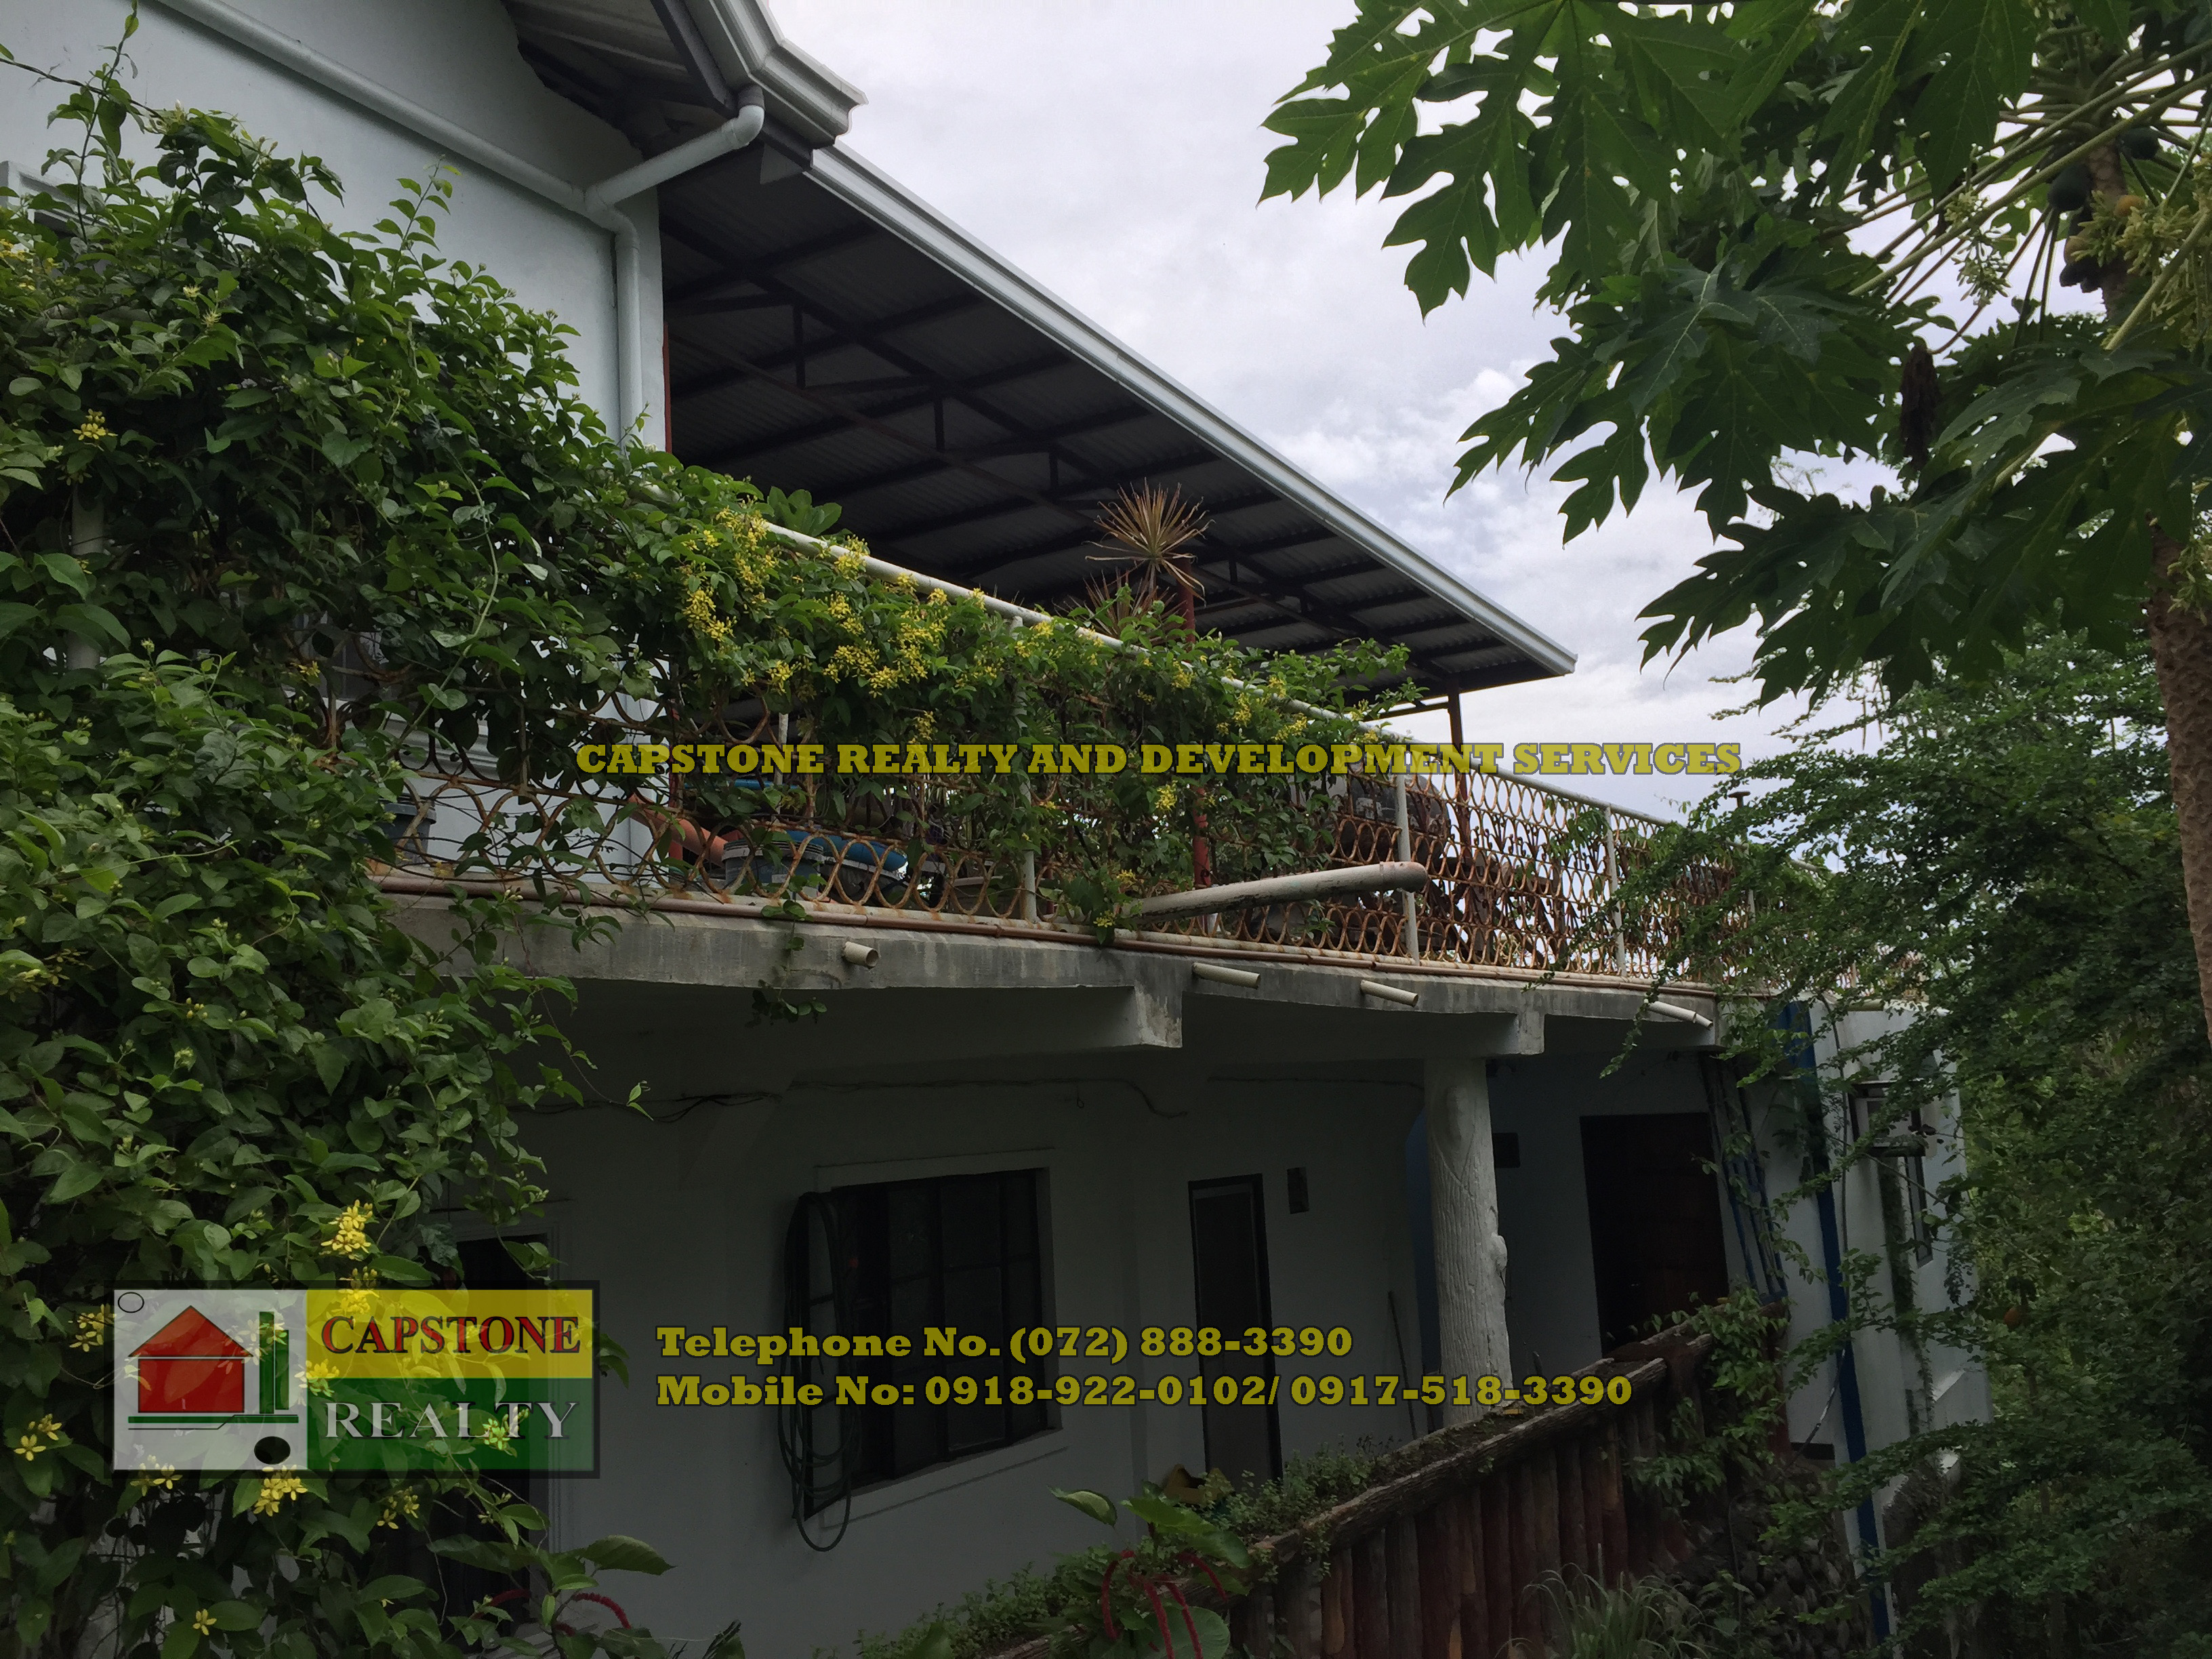 House and Lot for Sale, Urbiztondo, San Juan La Union, Ilocos (SOLD)